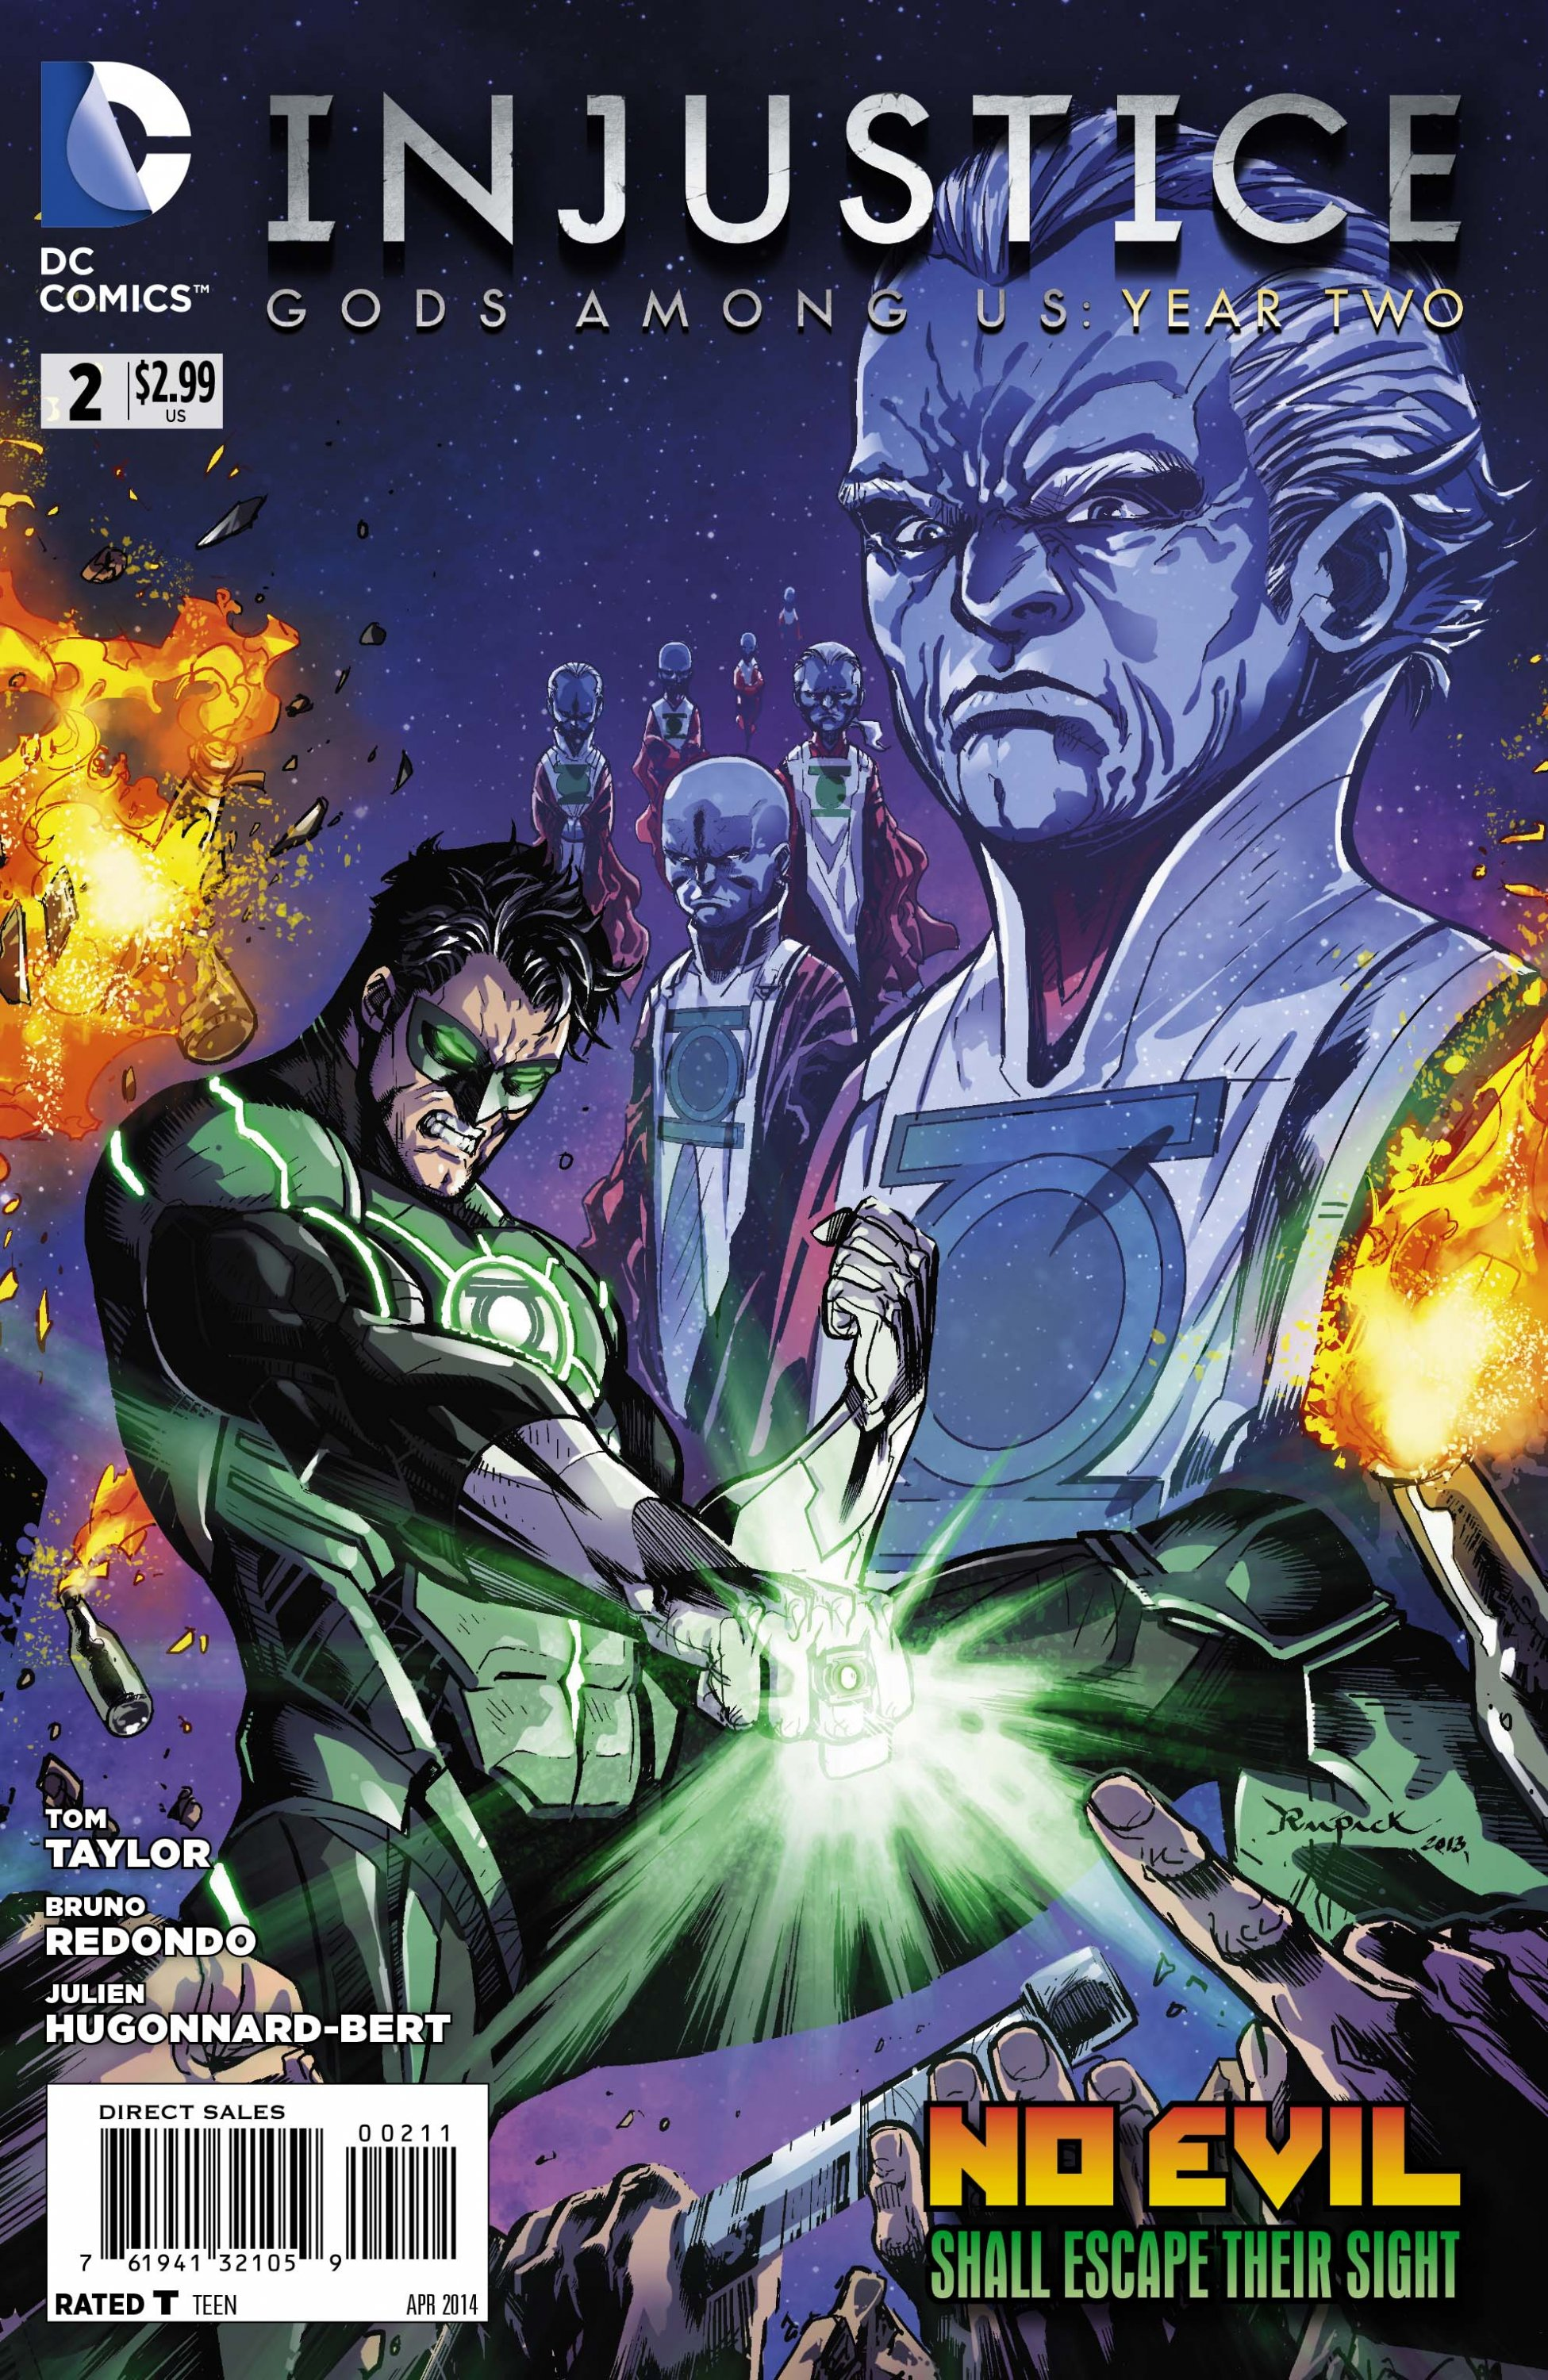 Injustice - Gods Among Us: Year Two 002 (April 2014)